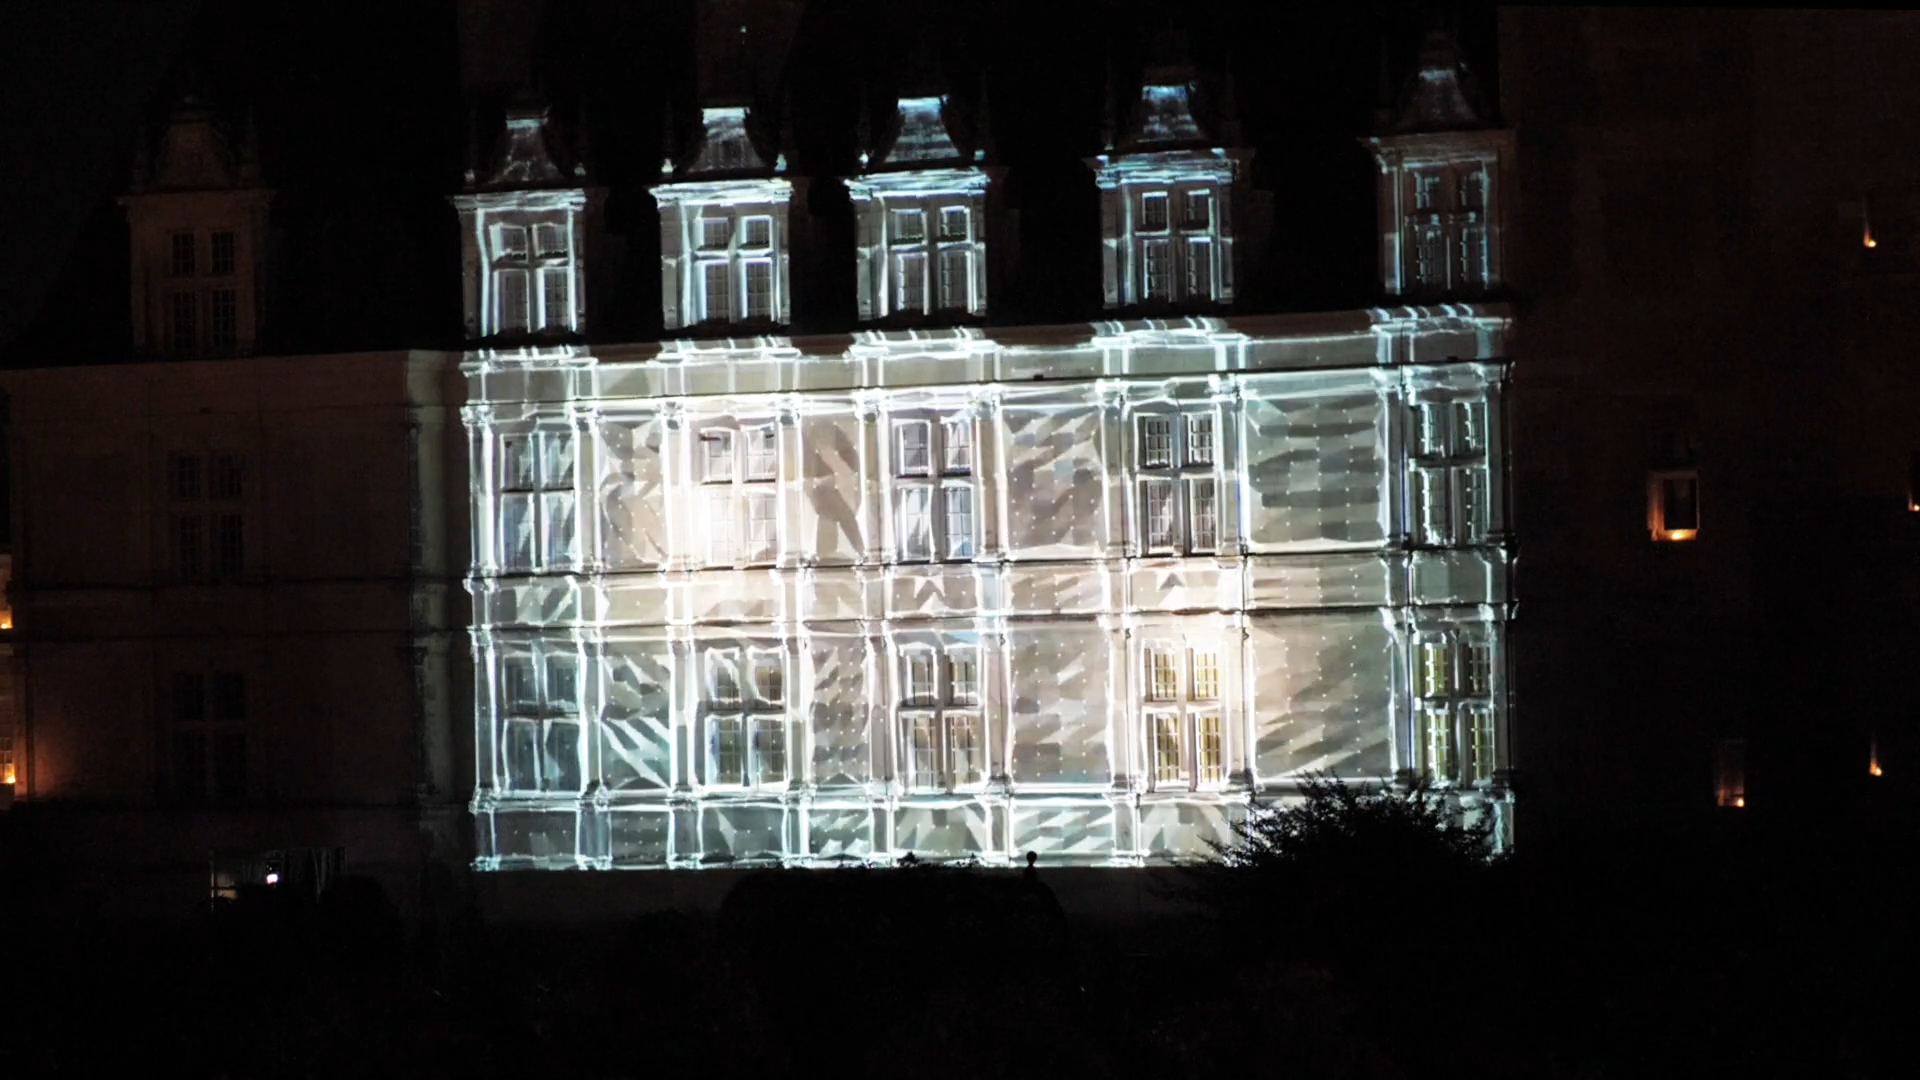 GALERIE-Dripmoon-Studio 3D-Tours-Motion design- Mapping château Villandry 4